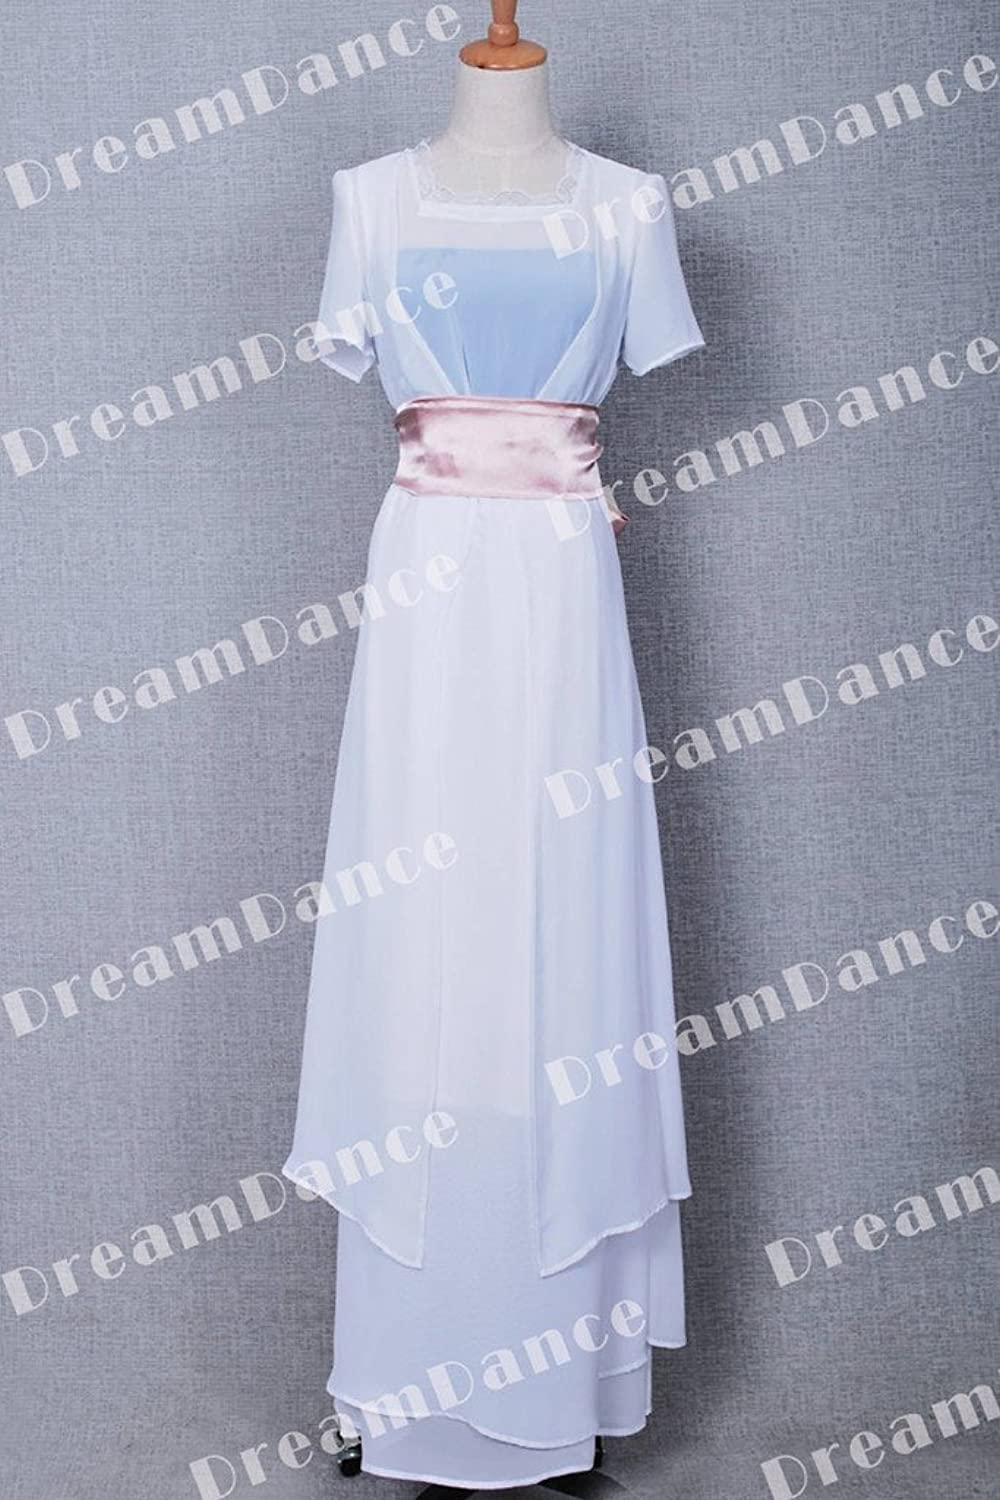 Amazon.com: FancyStyle Titanic Cosplay Rose Costume Swim Gown Dress White:  Clothing